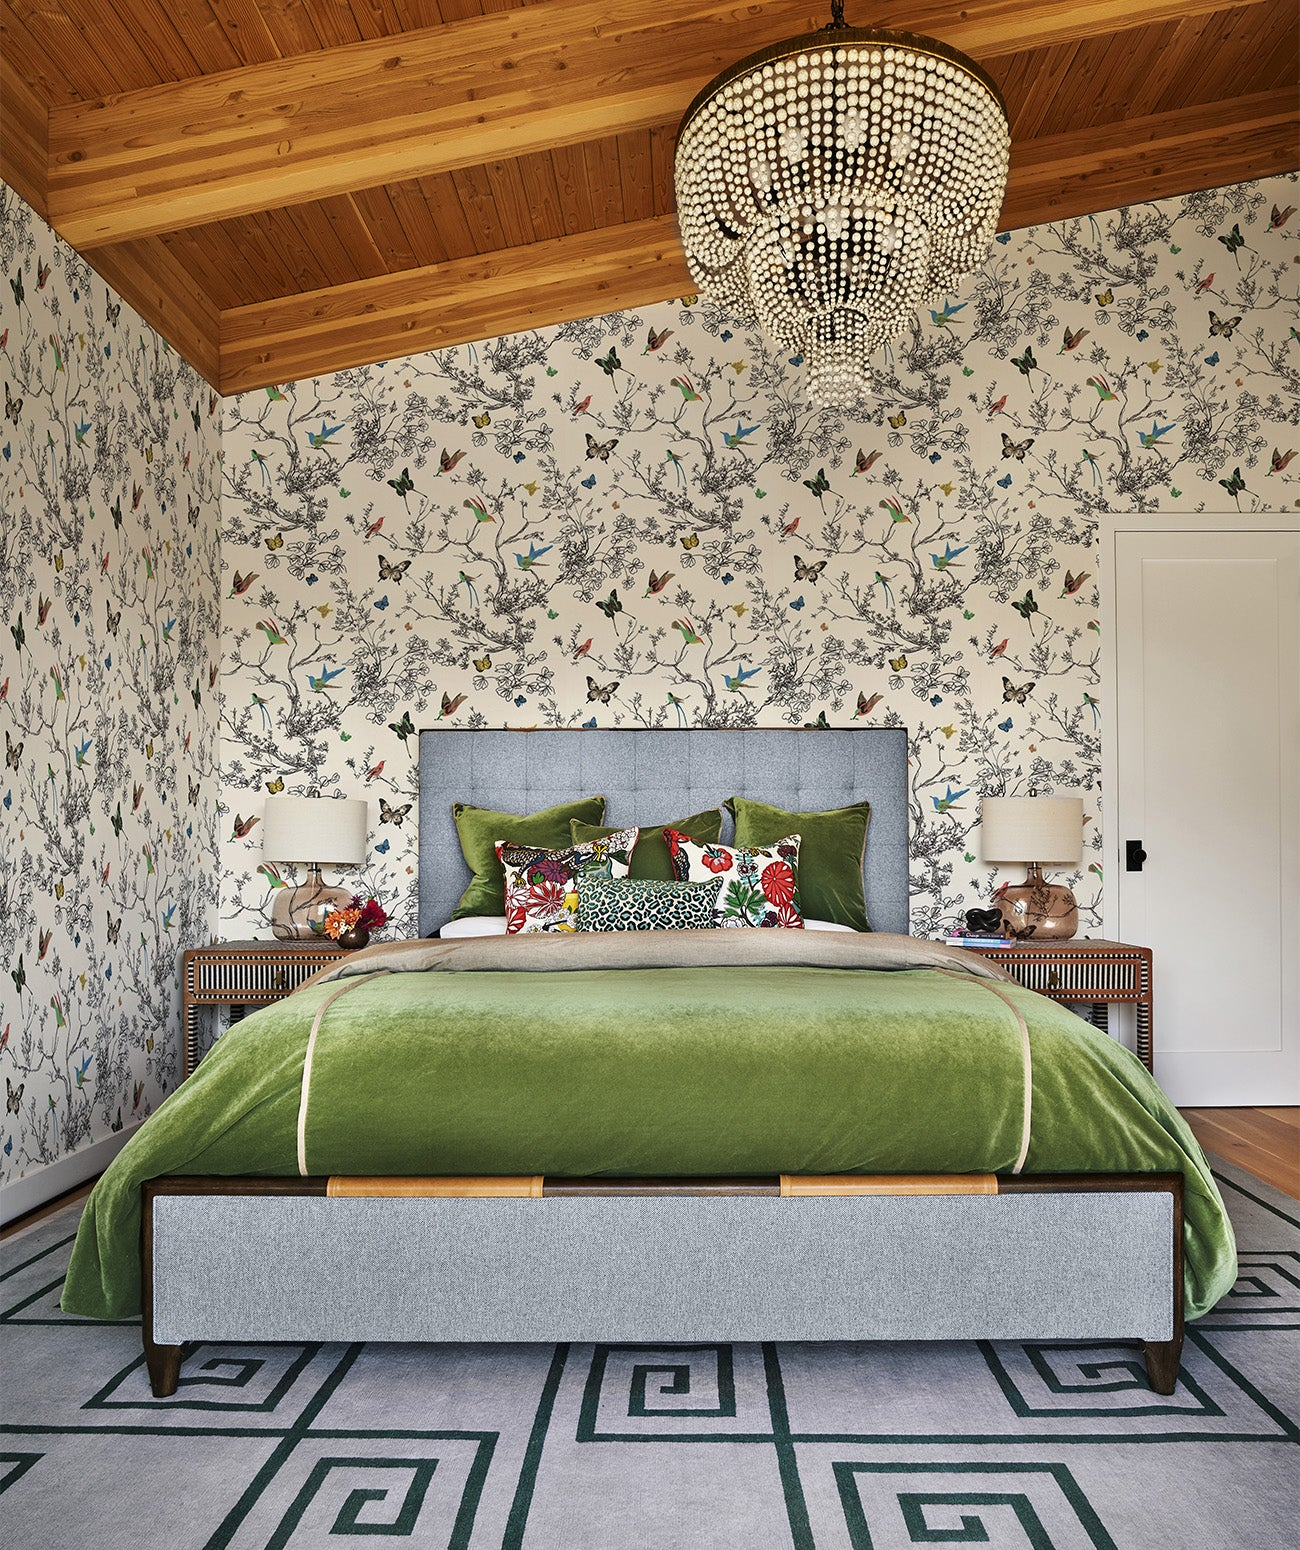 """A bedroom with floral wallpaper/Photography: Blackstone Edge/""""Wallpaper is a different universe than paint. It offers an instant mood. I use it liberally and highly recommend it,"""" says Angela."""